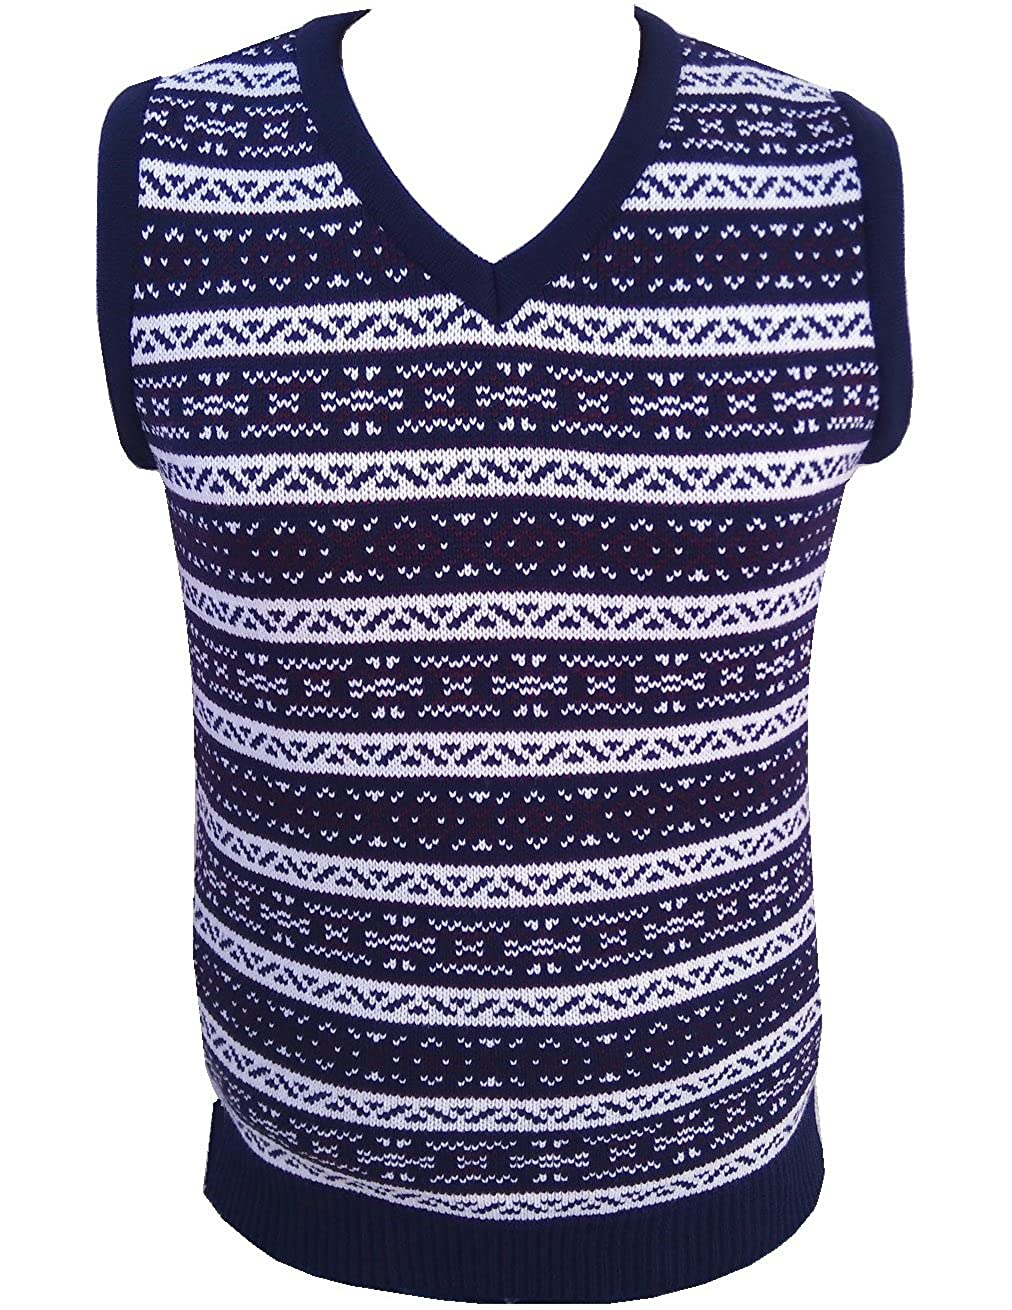 Men's Vintage Sweaters – 1920s to 1960s Retro Jumpers London Knitwear Gallery Aztec Retro Vintage Knitwear Tanktop Sleeveless Golf Sweater �18.99 AT vintagedancer.com